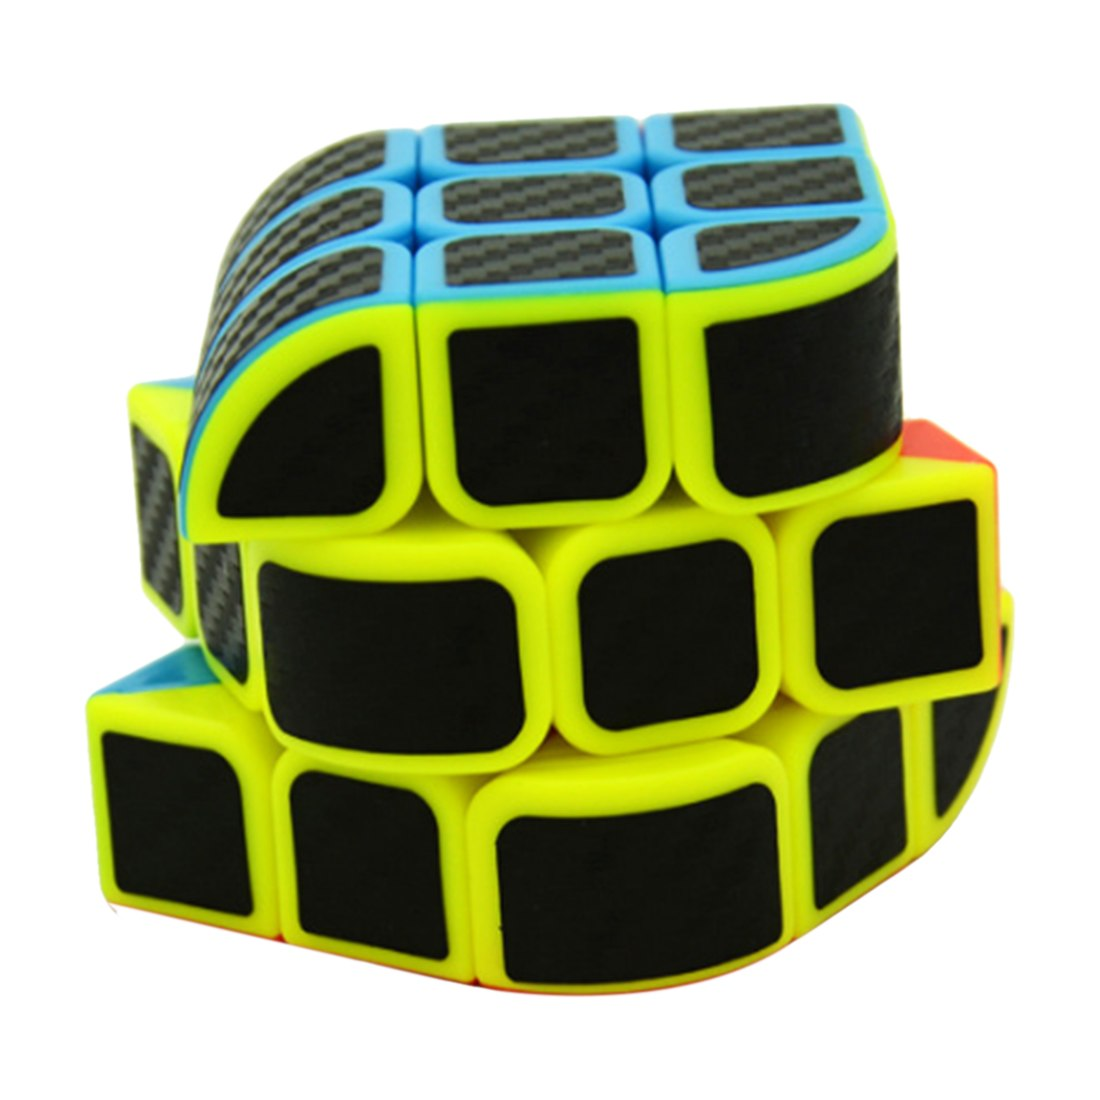 Lefang-Trihedron-Magic-Cube-Puzzle-Toy-with-Carbon-Fiber-Sticker-for-Competition-Challenge-Colorful (2)